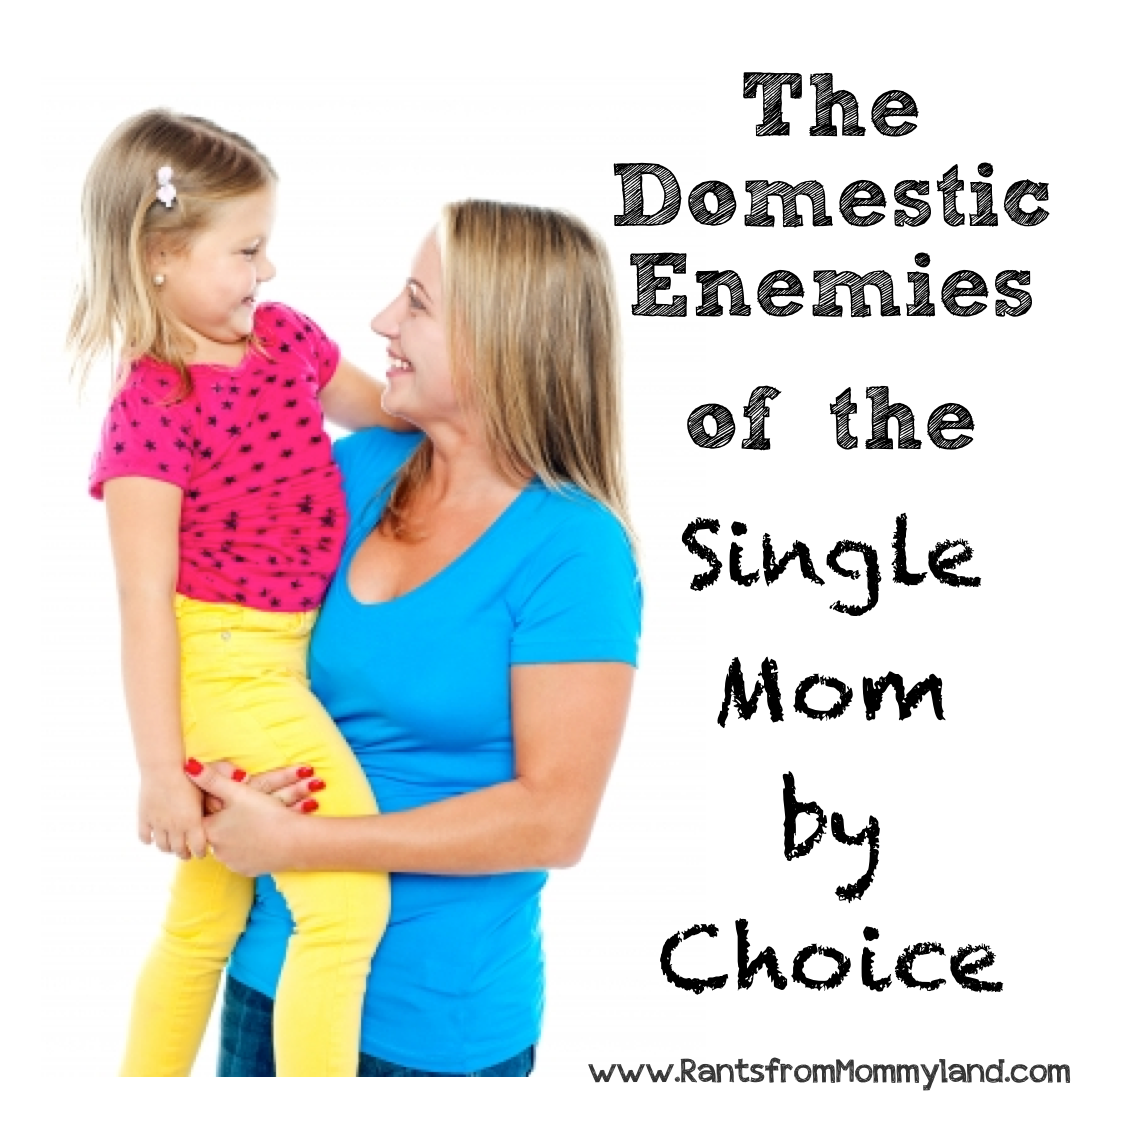 single mothers by choice dating A patient came into my office frustrated, complaining about people constantly asking him why he is not in a relationship, is he dating, etc he is single, but he.